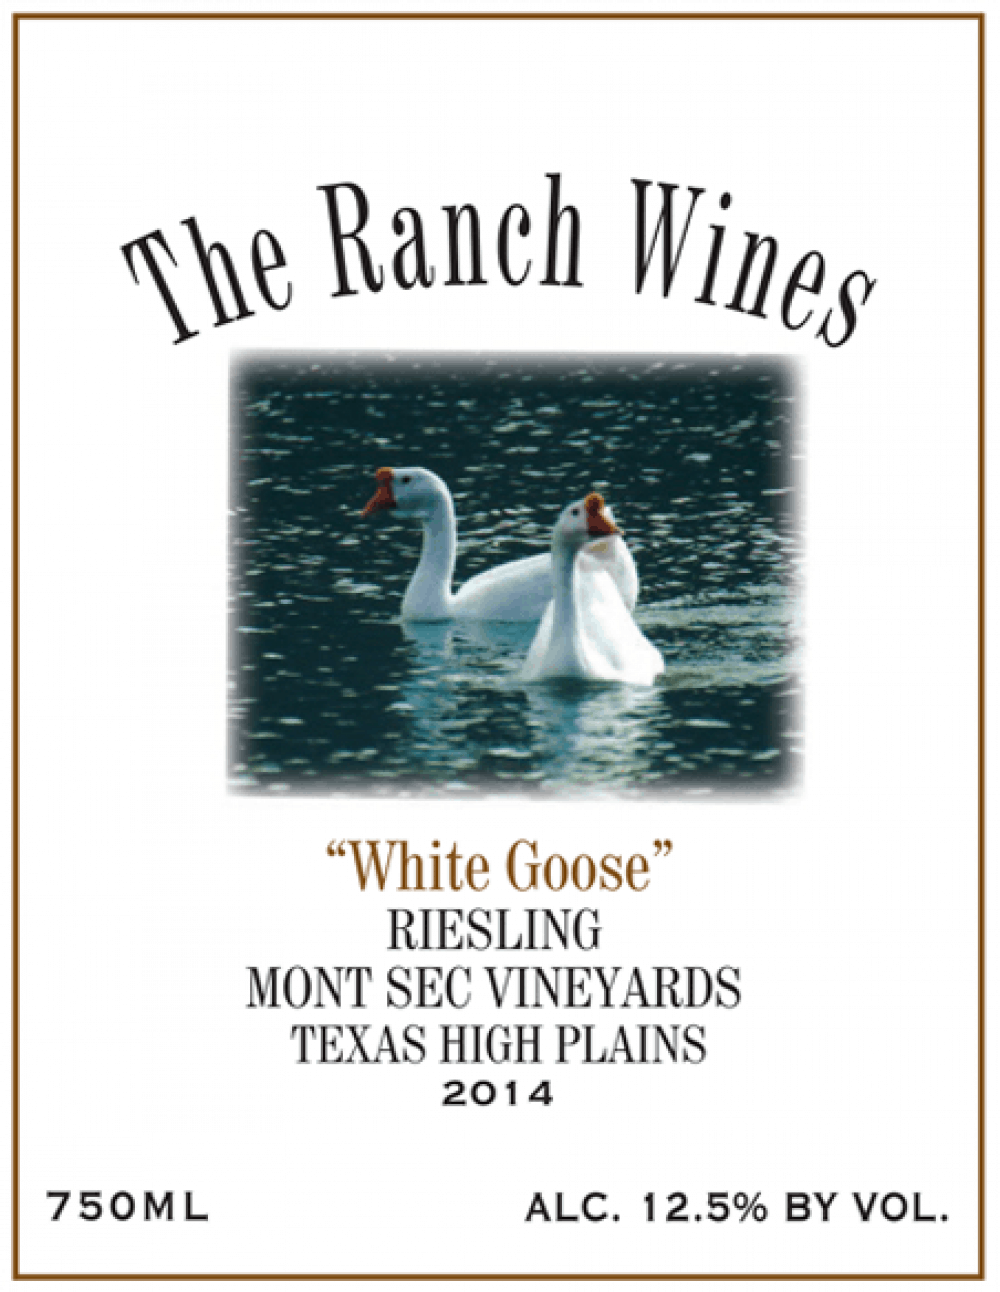 North Texas Wine Riesling White Goose